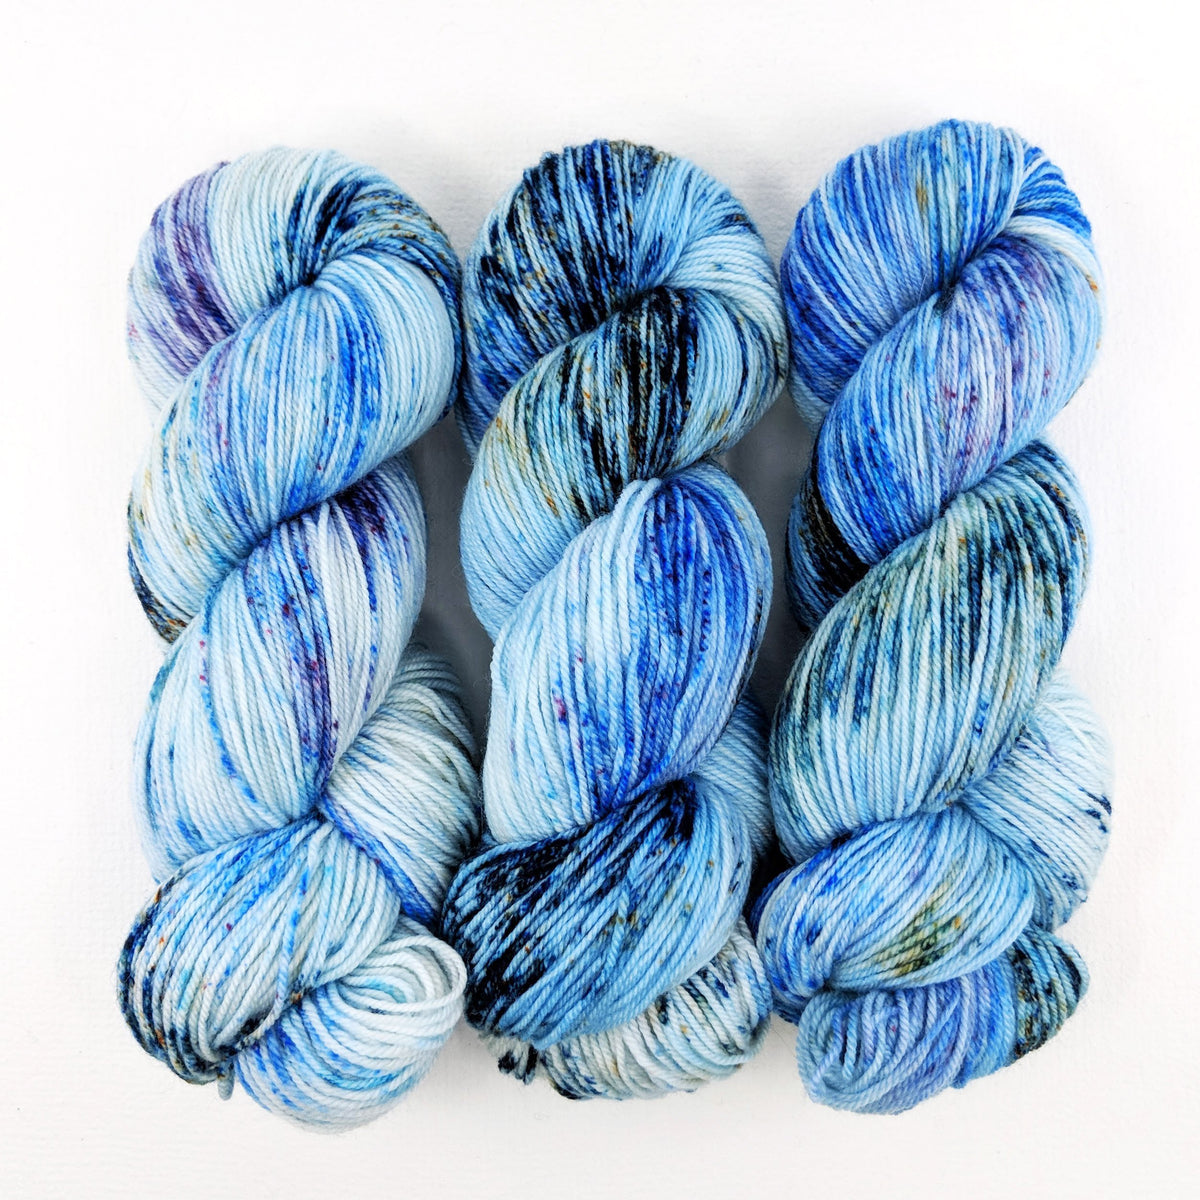 Picasso in Blue - Bunny Hug Sport - Dyed Stock